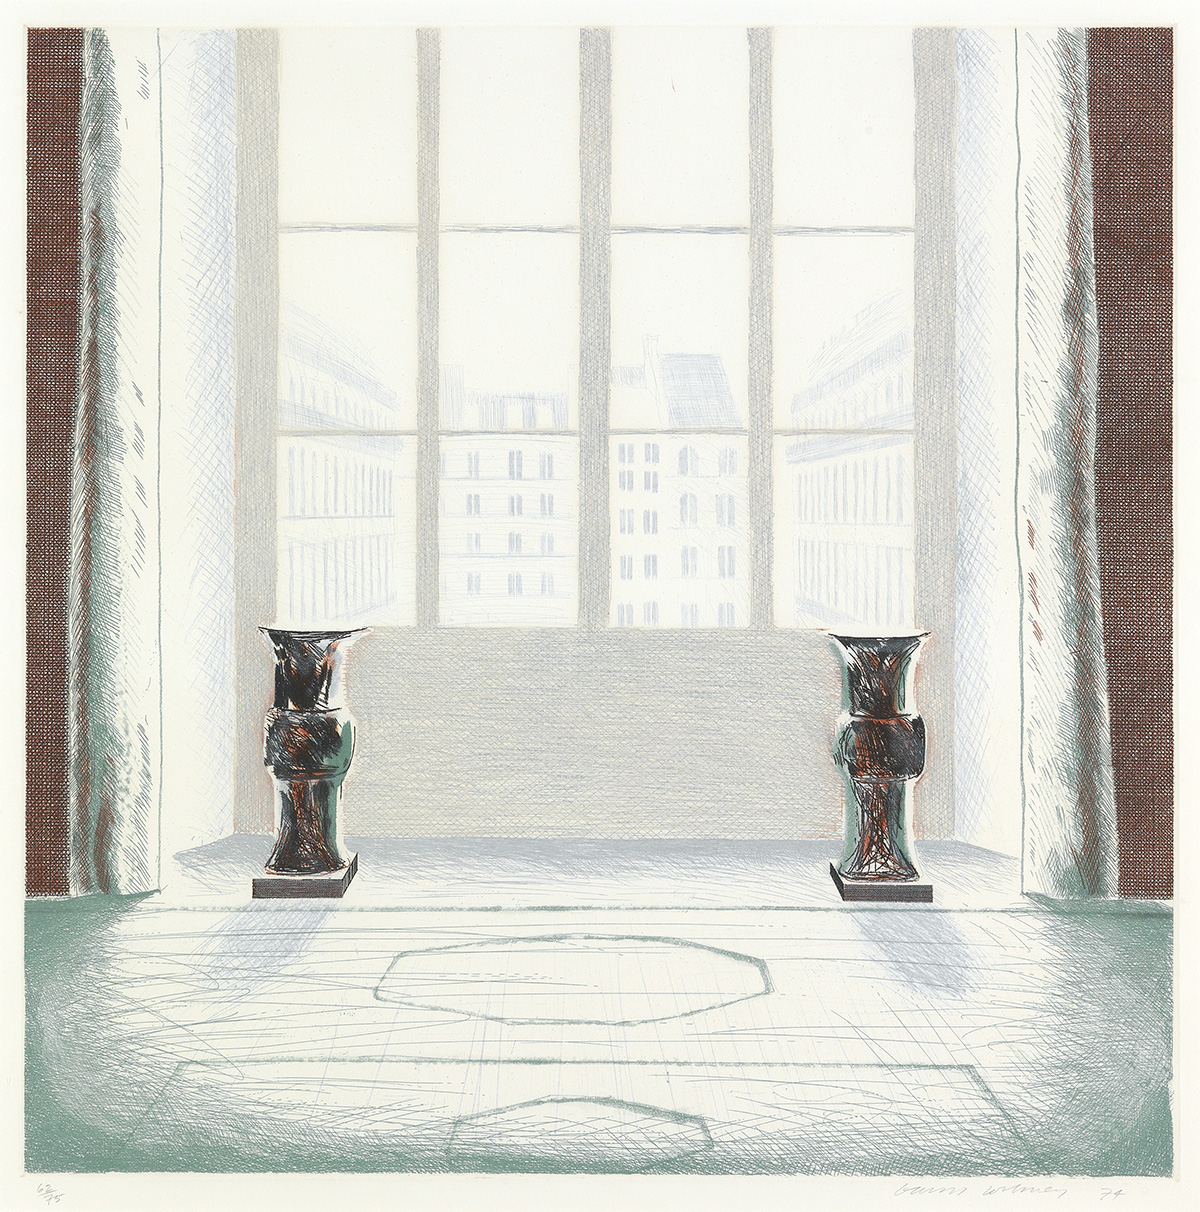 DAVID-HOCKNEY-Two-Vases-in-the-Louvre